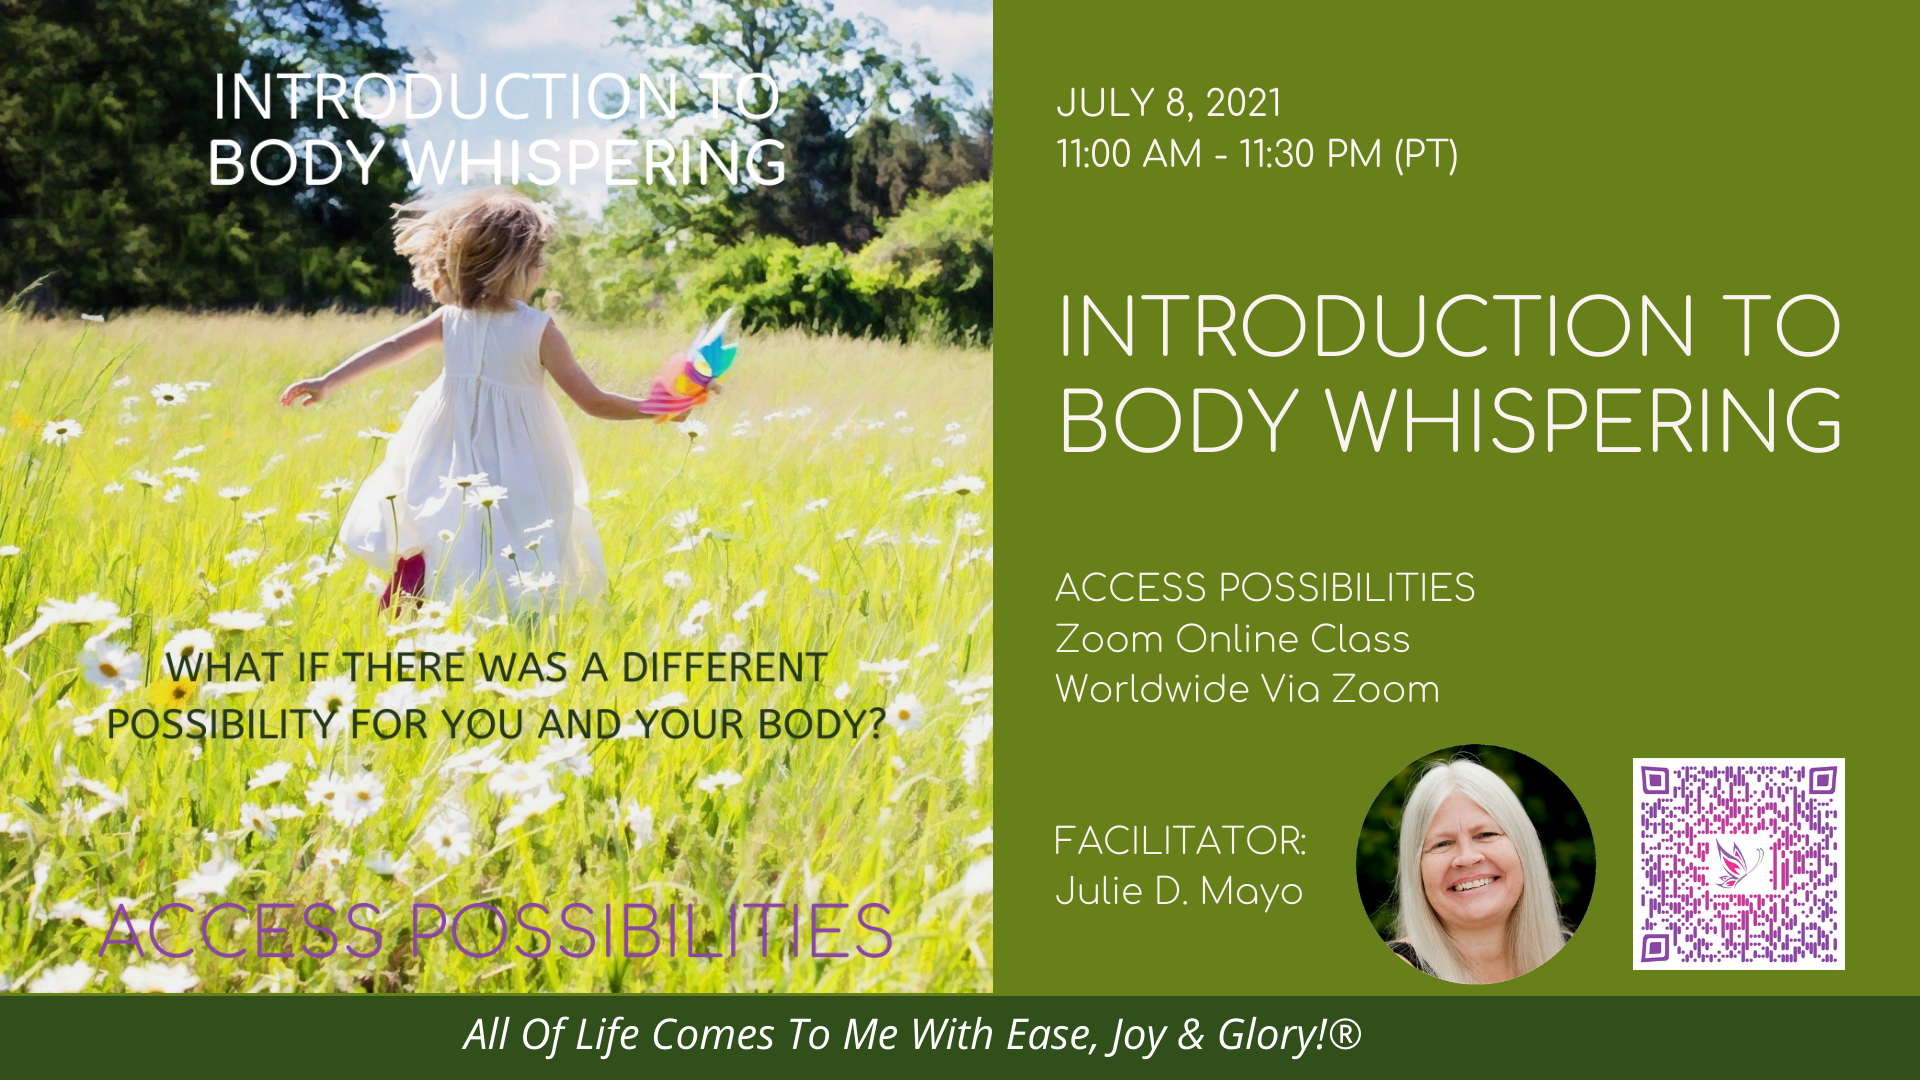 Introduction To Body Whispering Zoom Online Class Details | July 8 | Access Possibilities